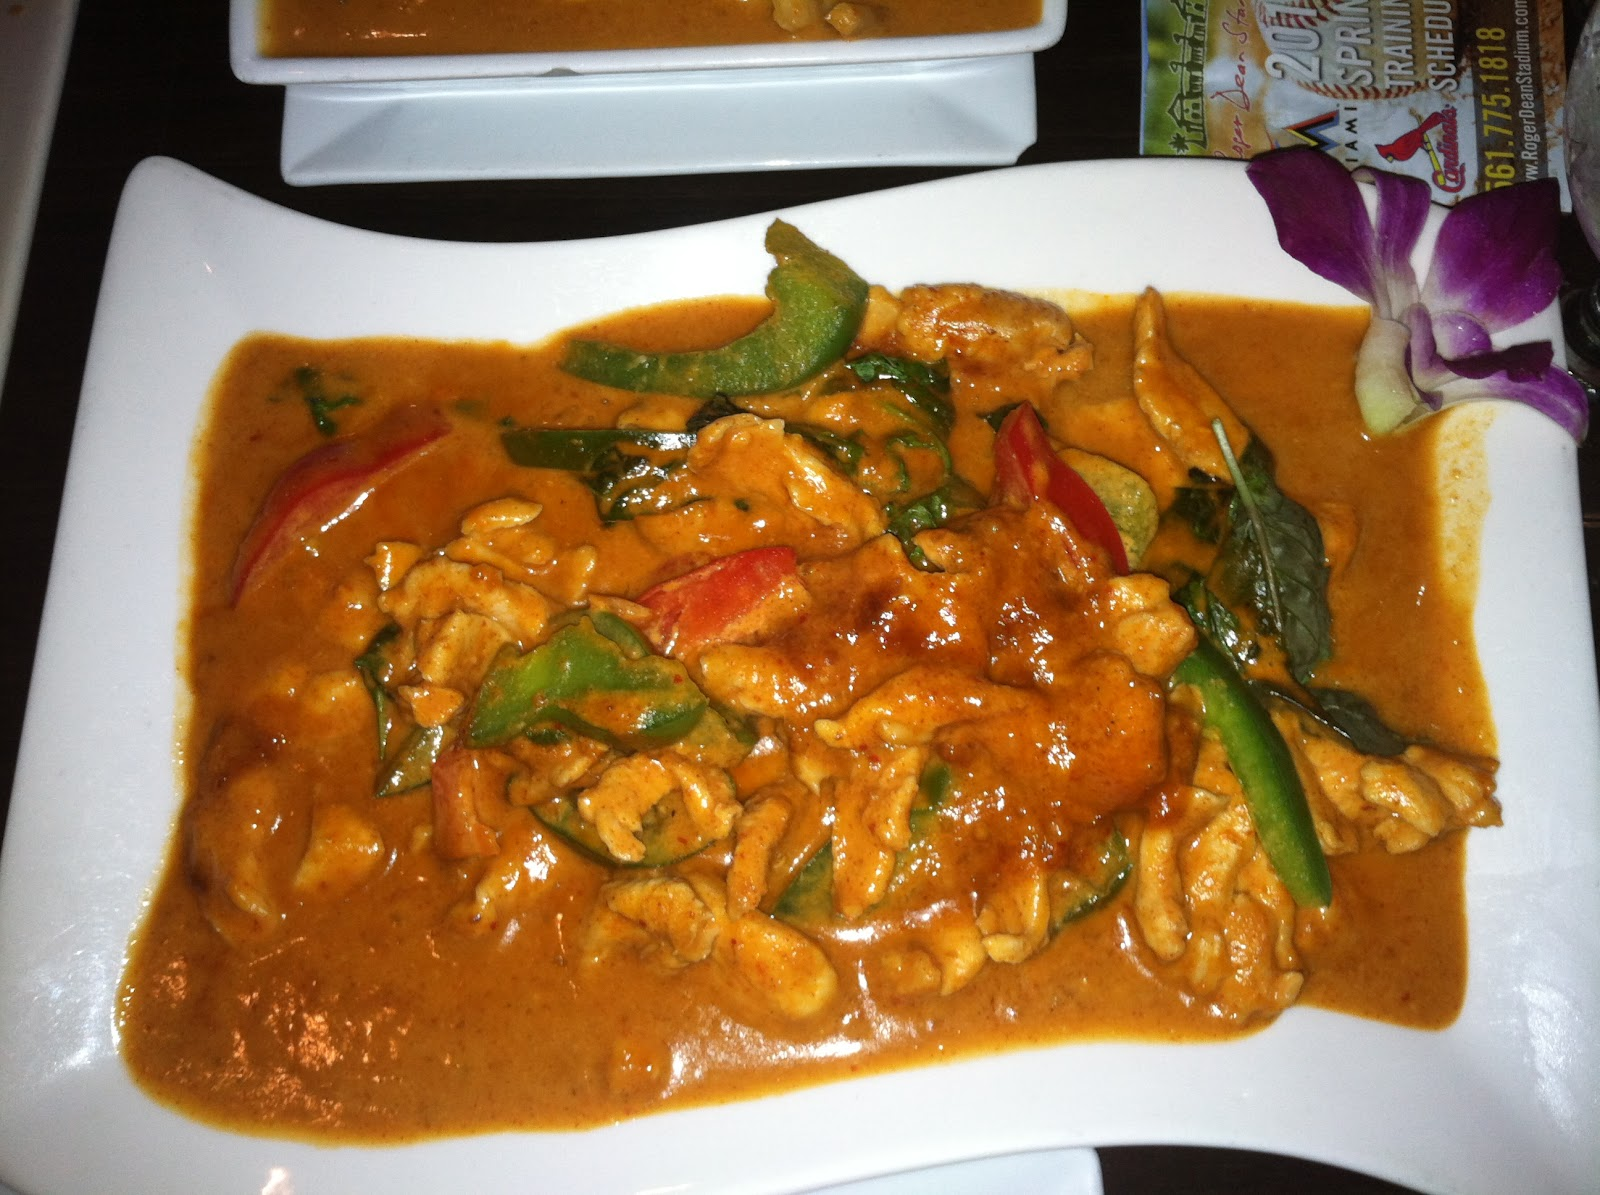 panang curry rat chicken panang curry panang curry the recipe panang ...